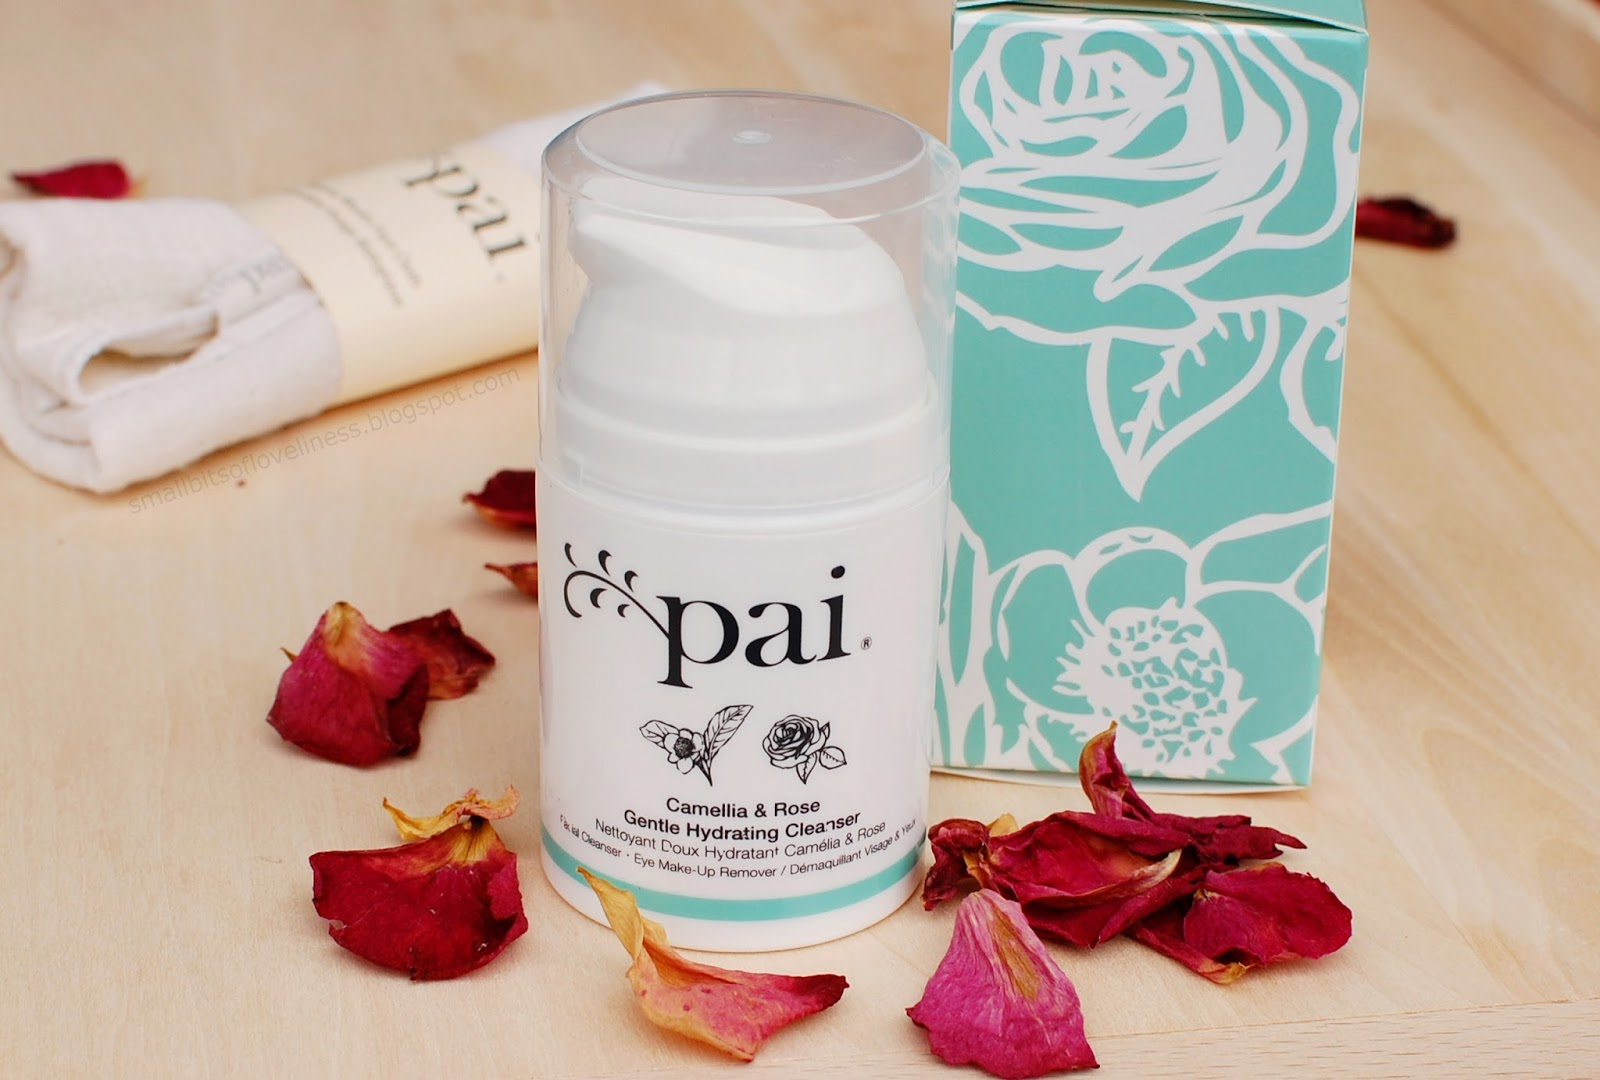 Pai Camellia & Rose Gentle Hydrating Cleanser, Eye Make-up remover